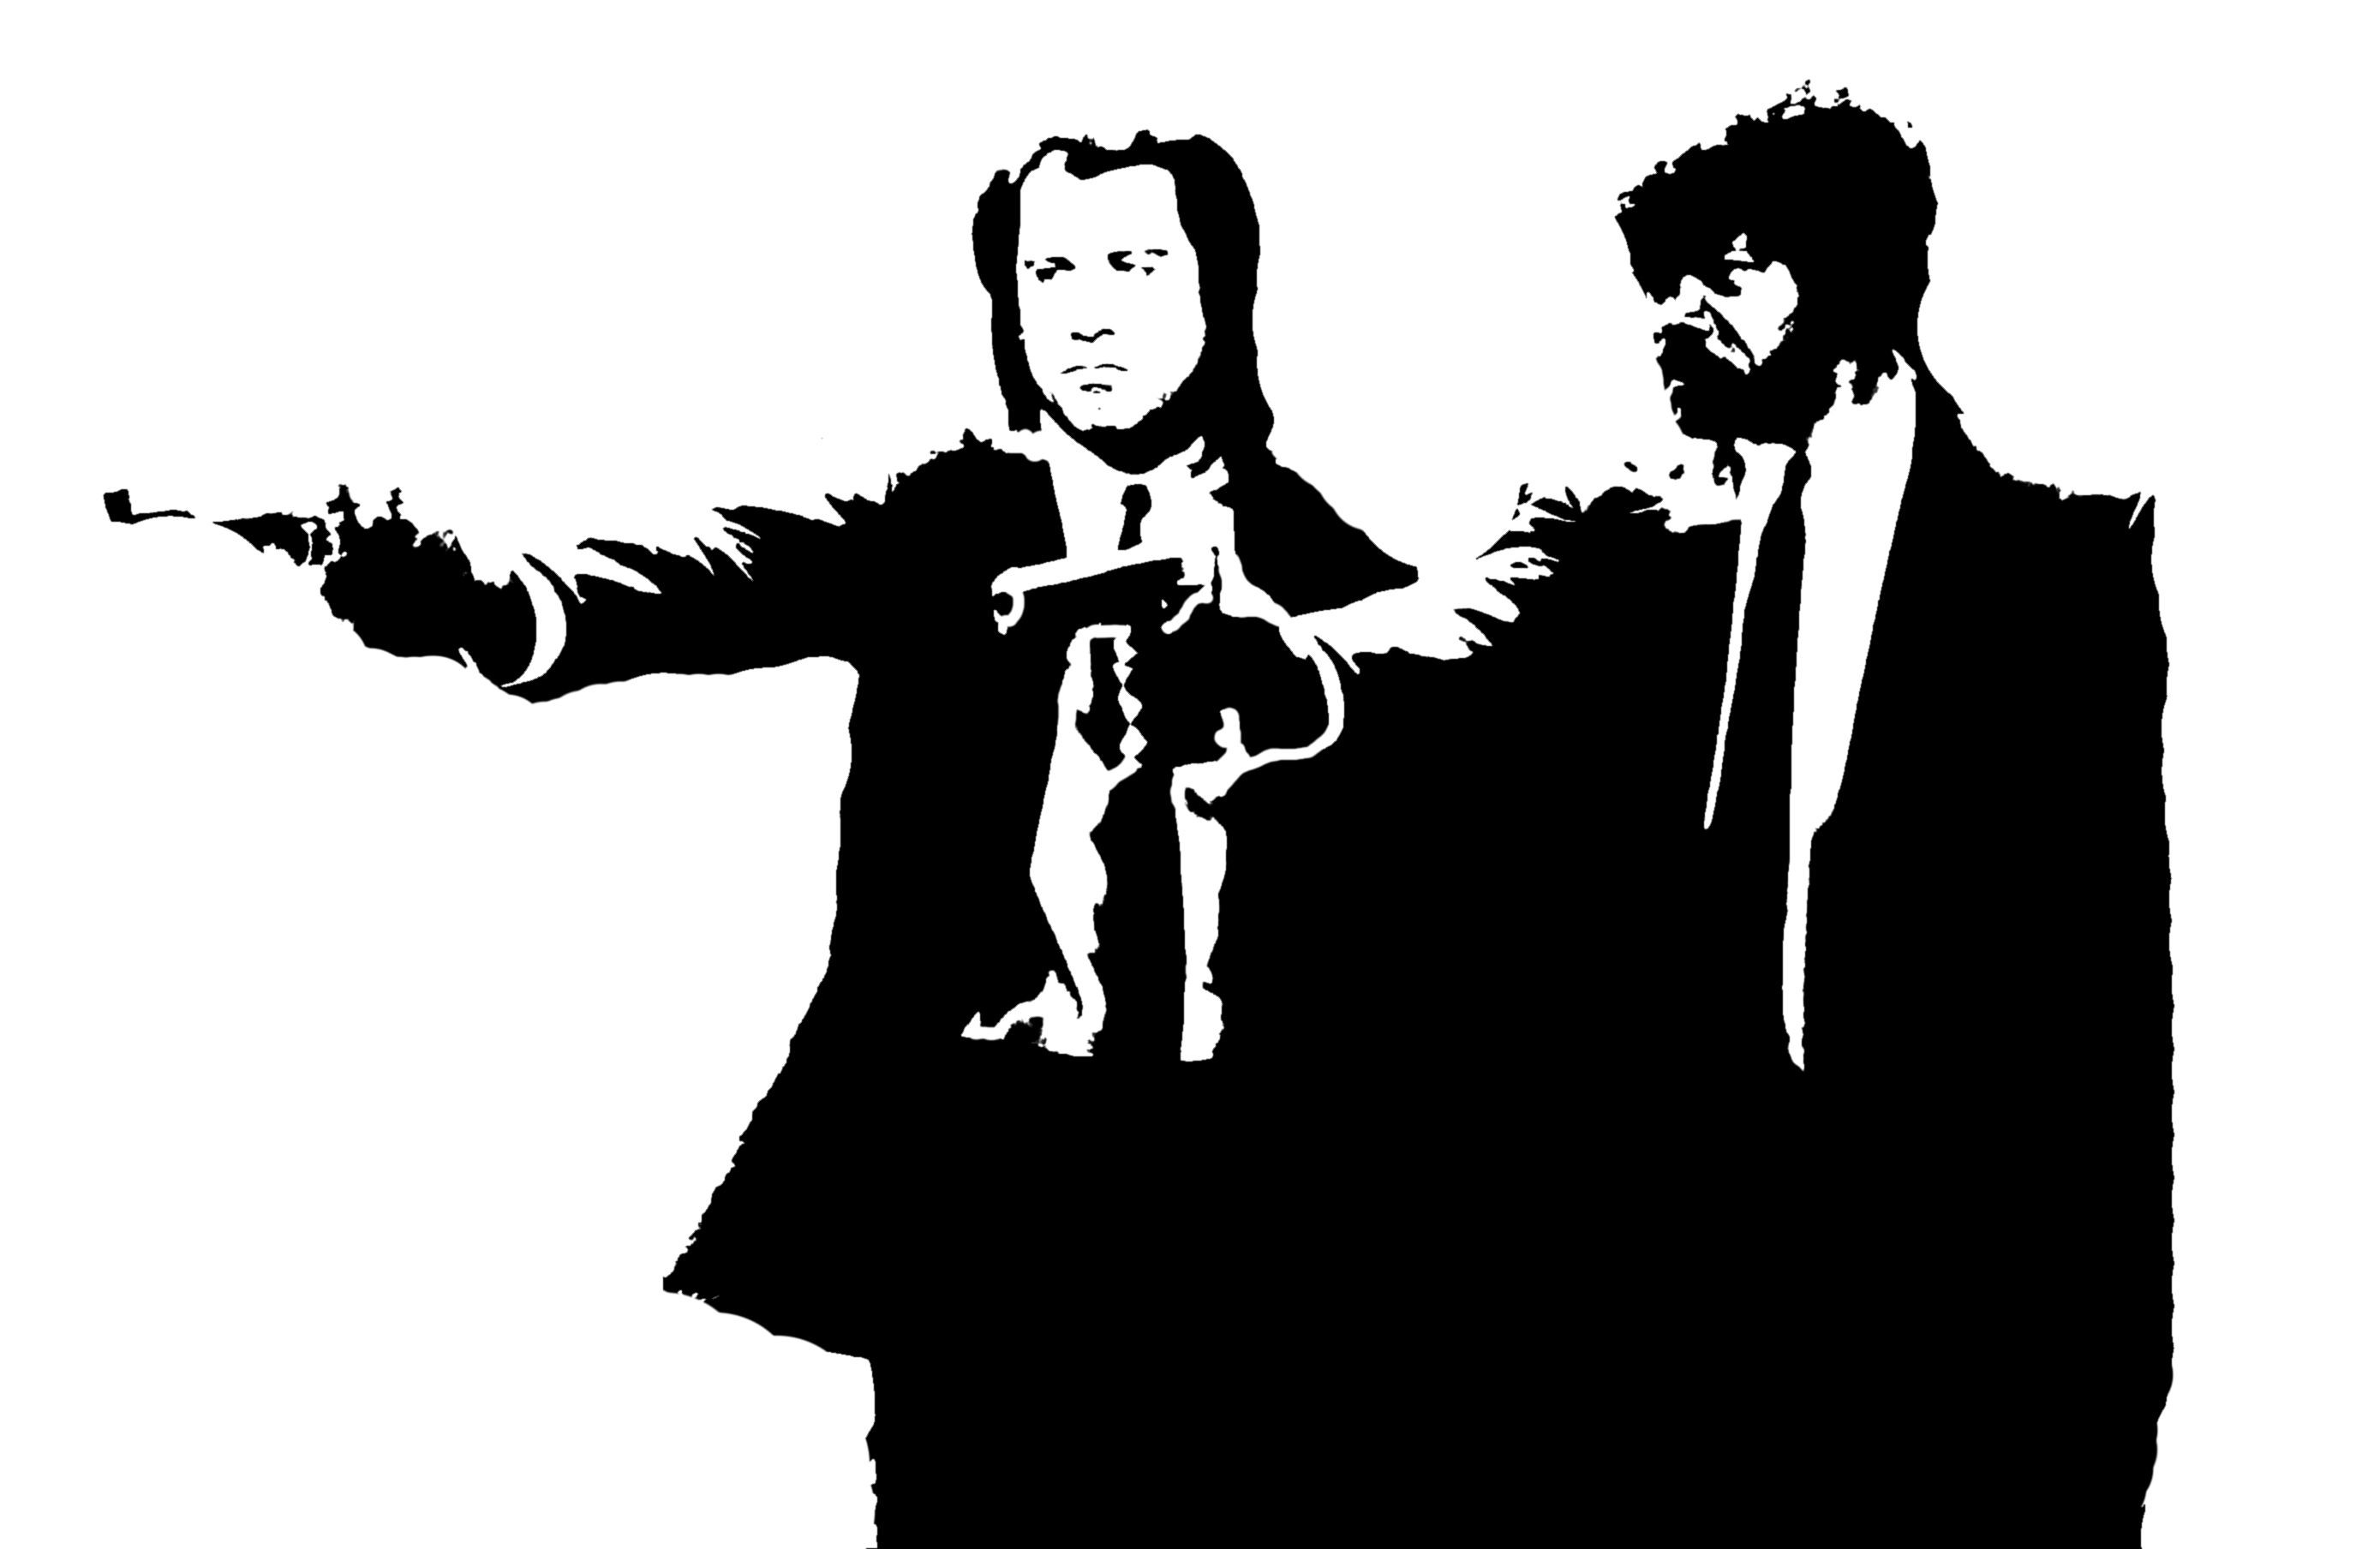 pulp fiction #ooof